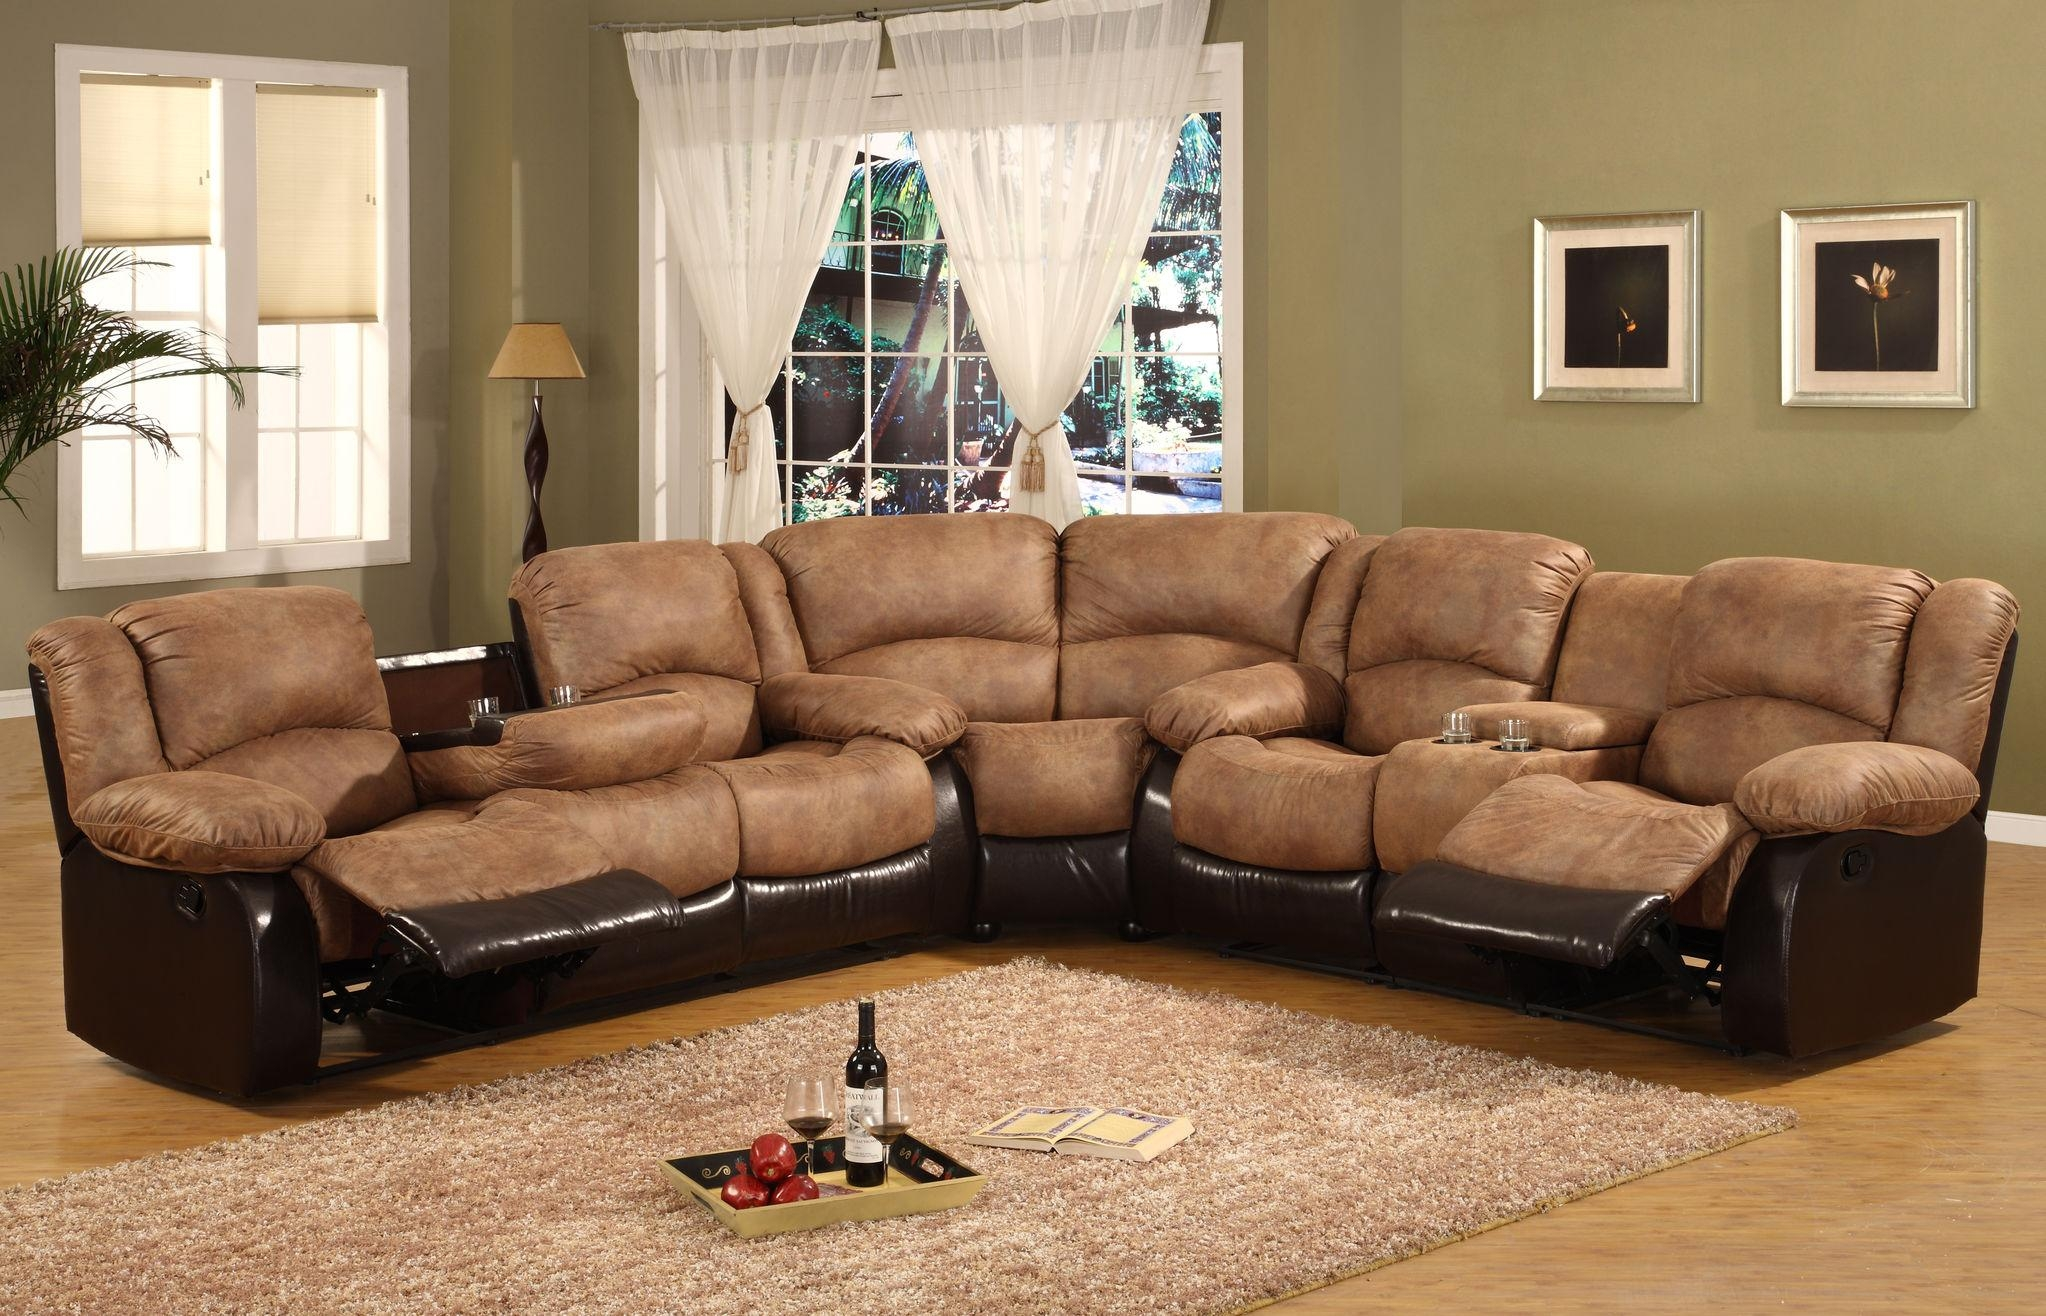 Simmons Sectional Sofas – S3Net – Sectional Sofas Sale : S3Net In Simmons Sectional Sofas (Image 8 of 20)